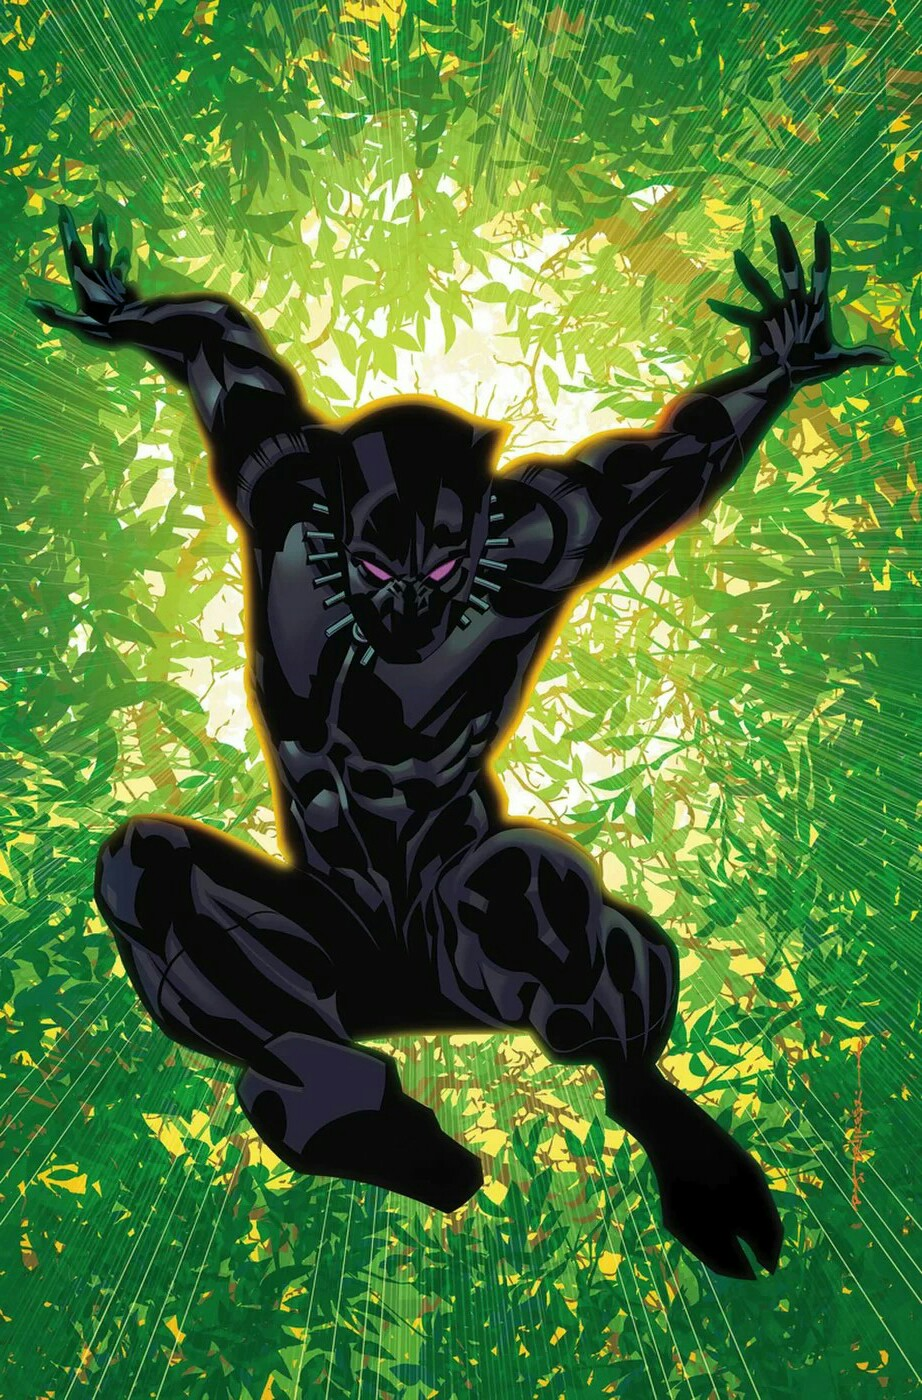 Green Animal Wallpaper Black Panther Marvel Vs Capcom Infinite